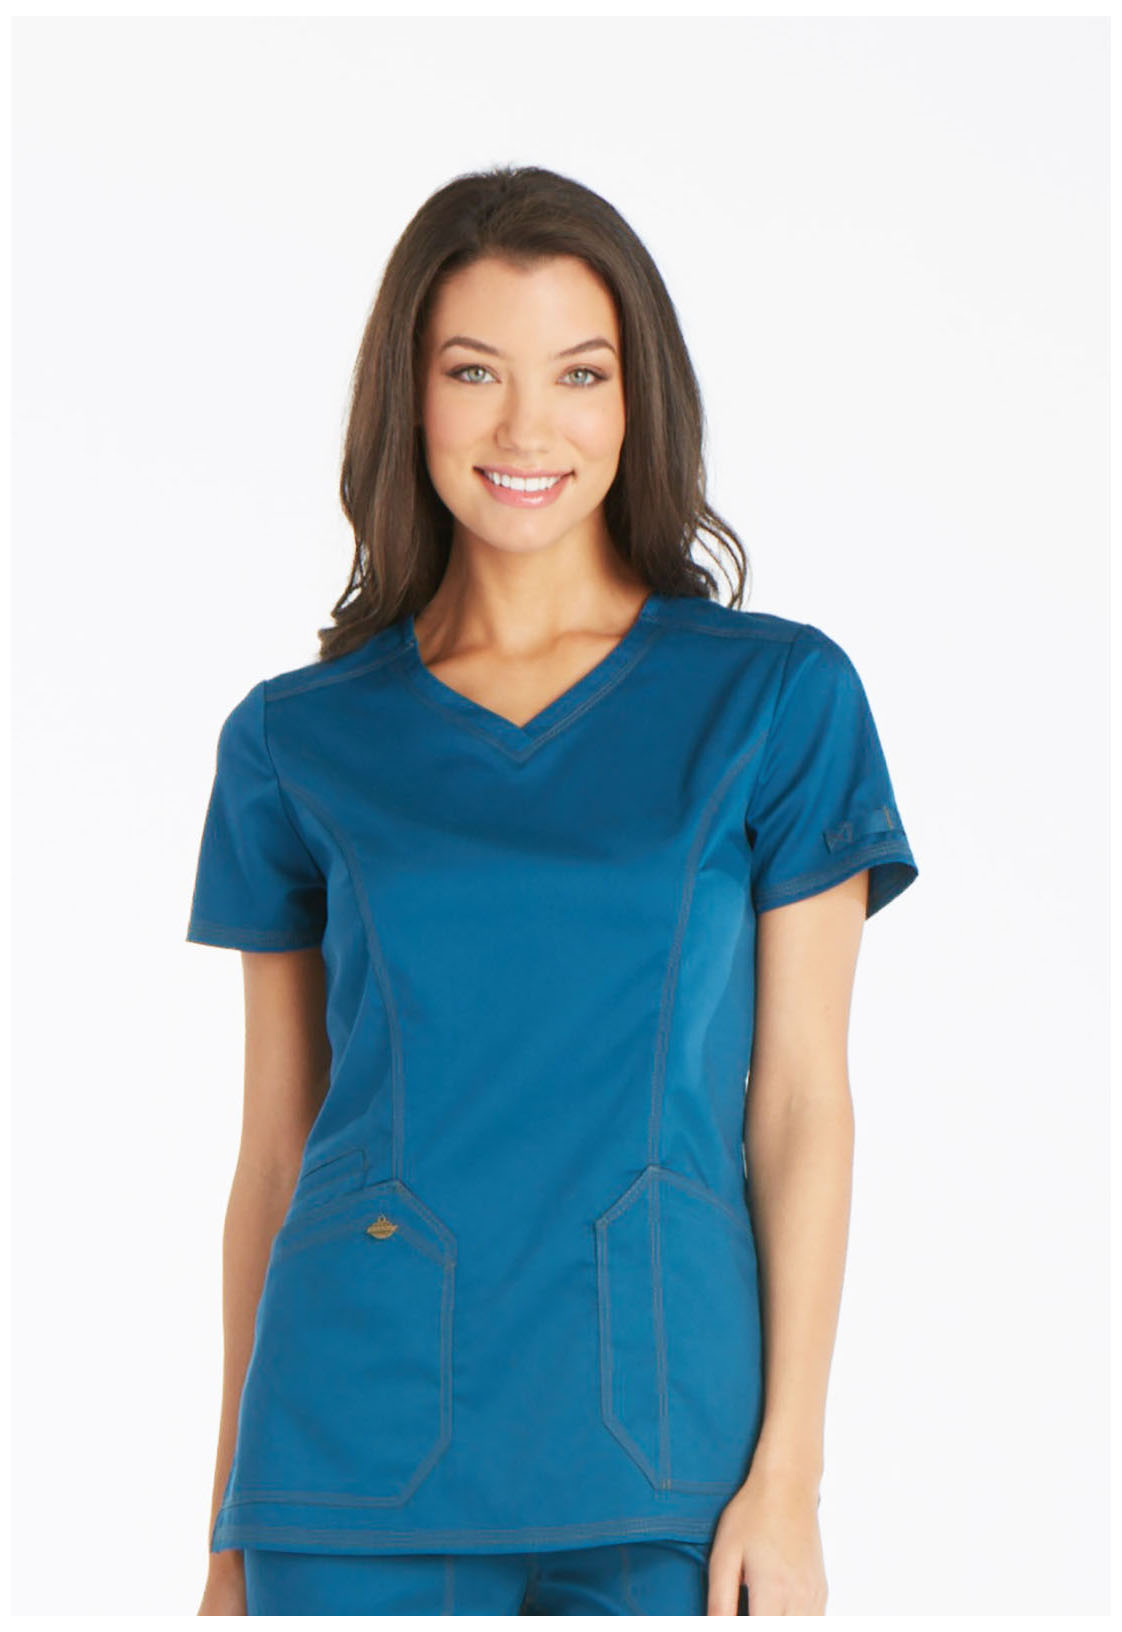 993bb1e5 Dickies V-Neck Top (Regular) in Caribbean Blue from The Freedom Company